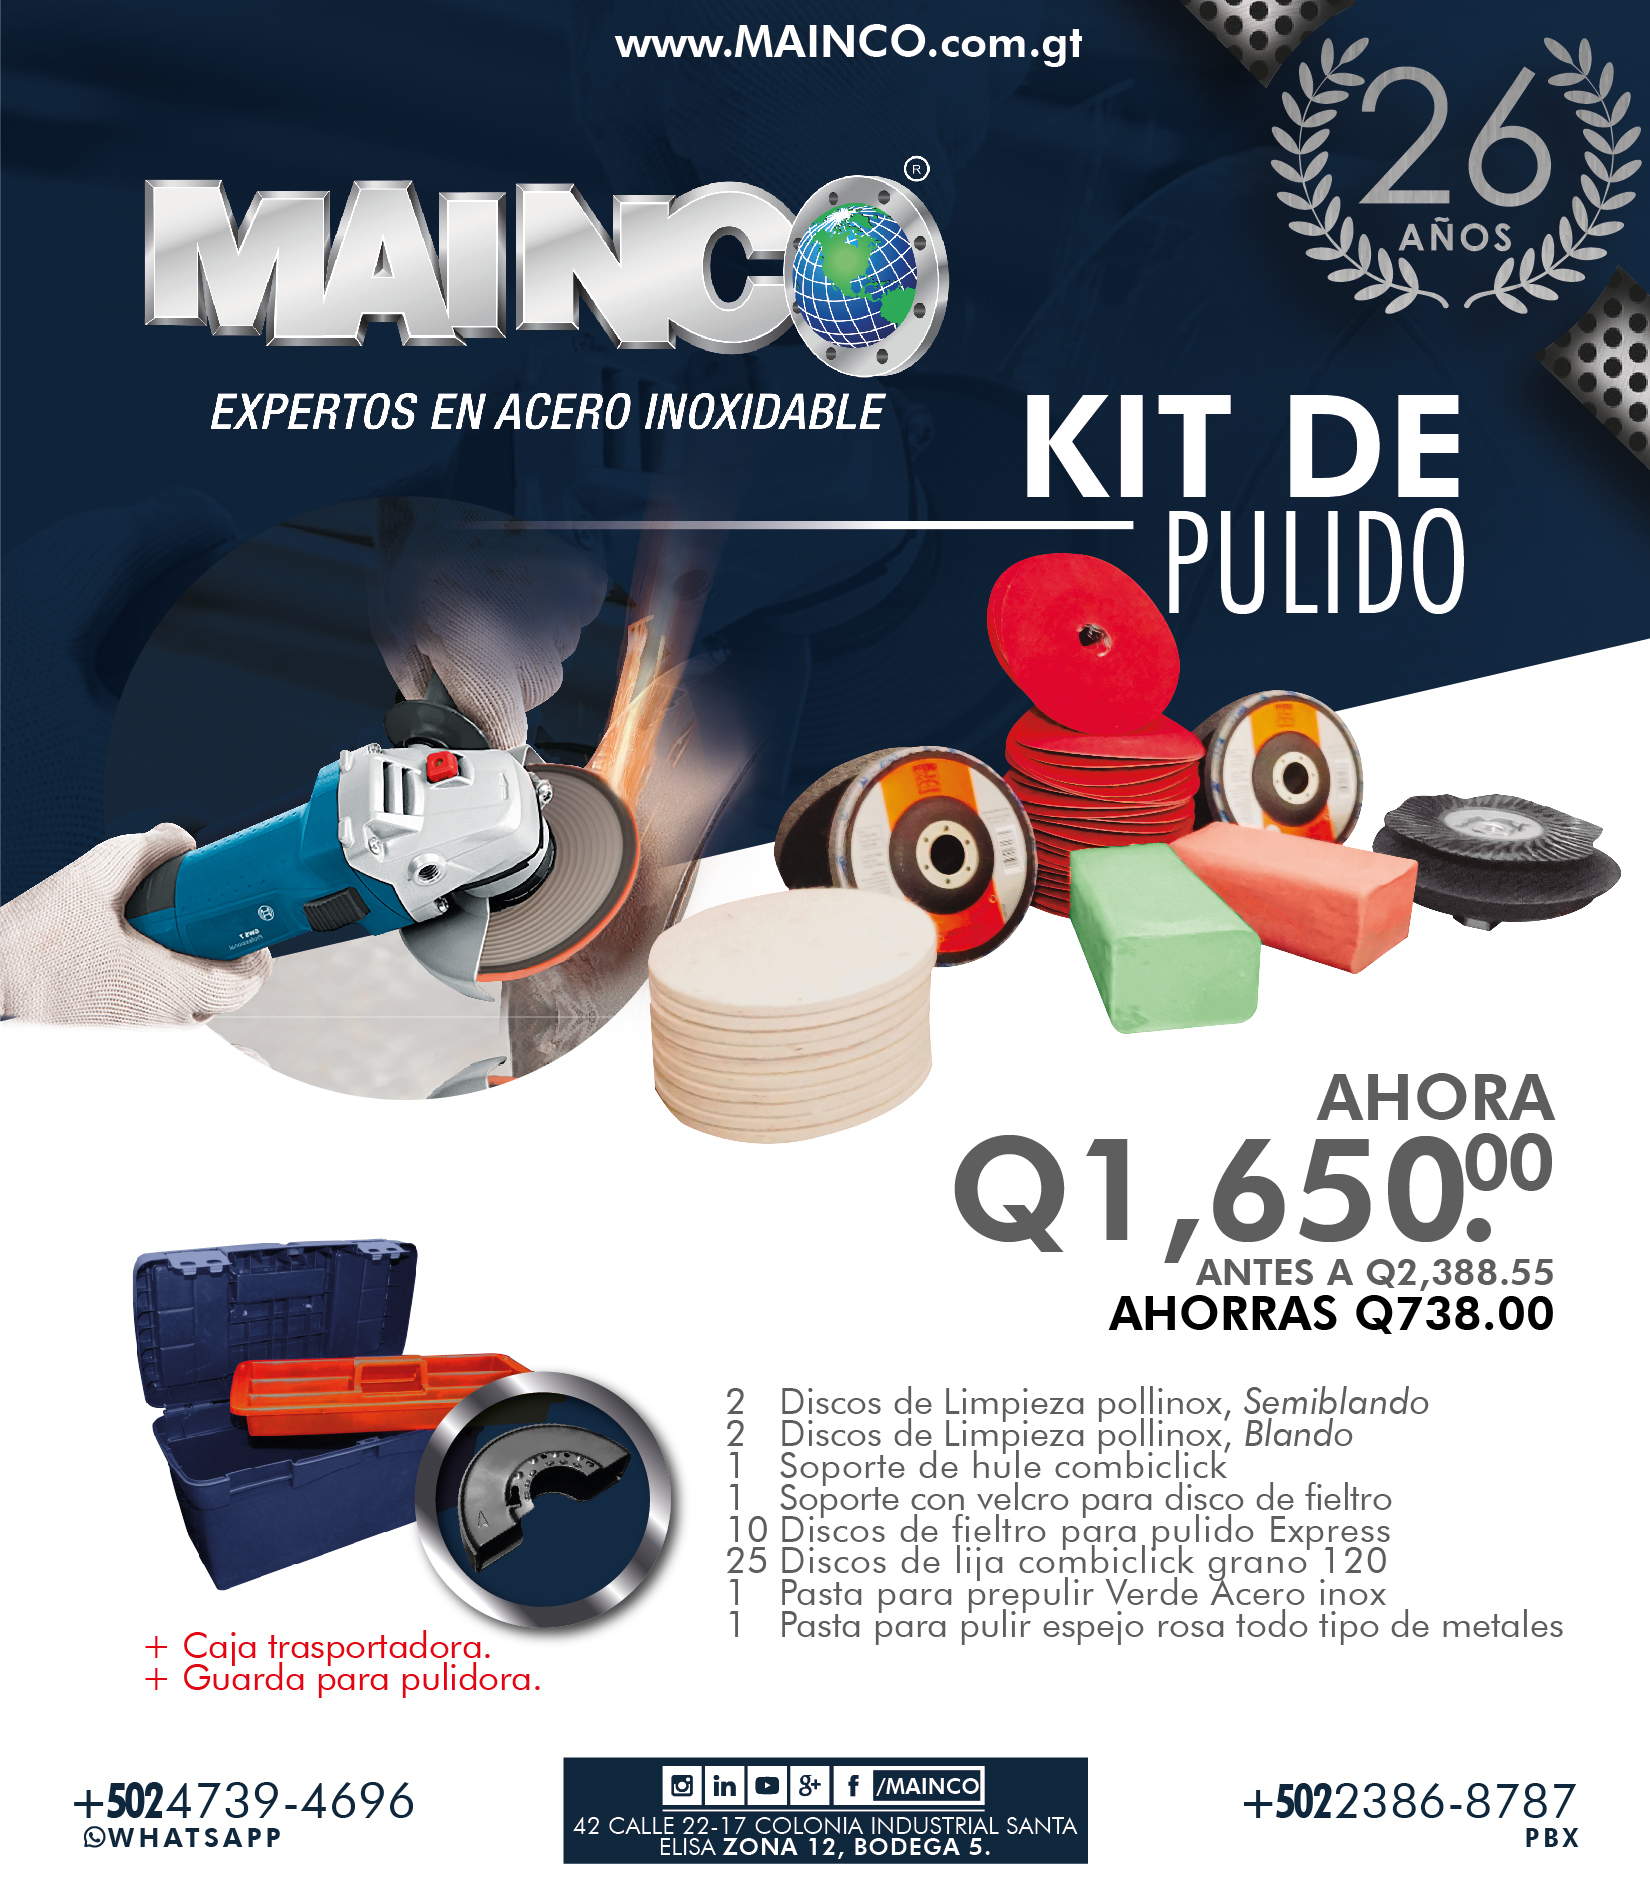 Kit de pulido MAINCO